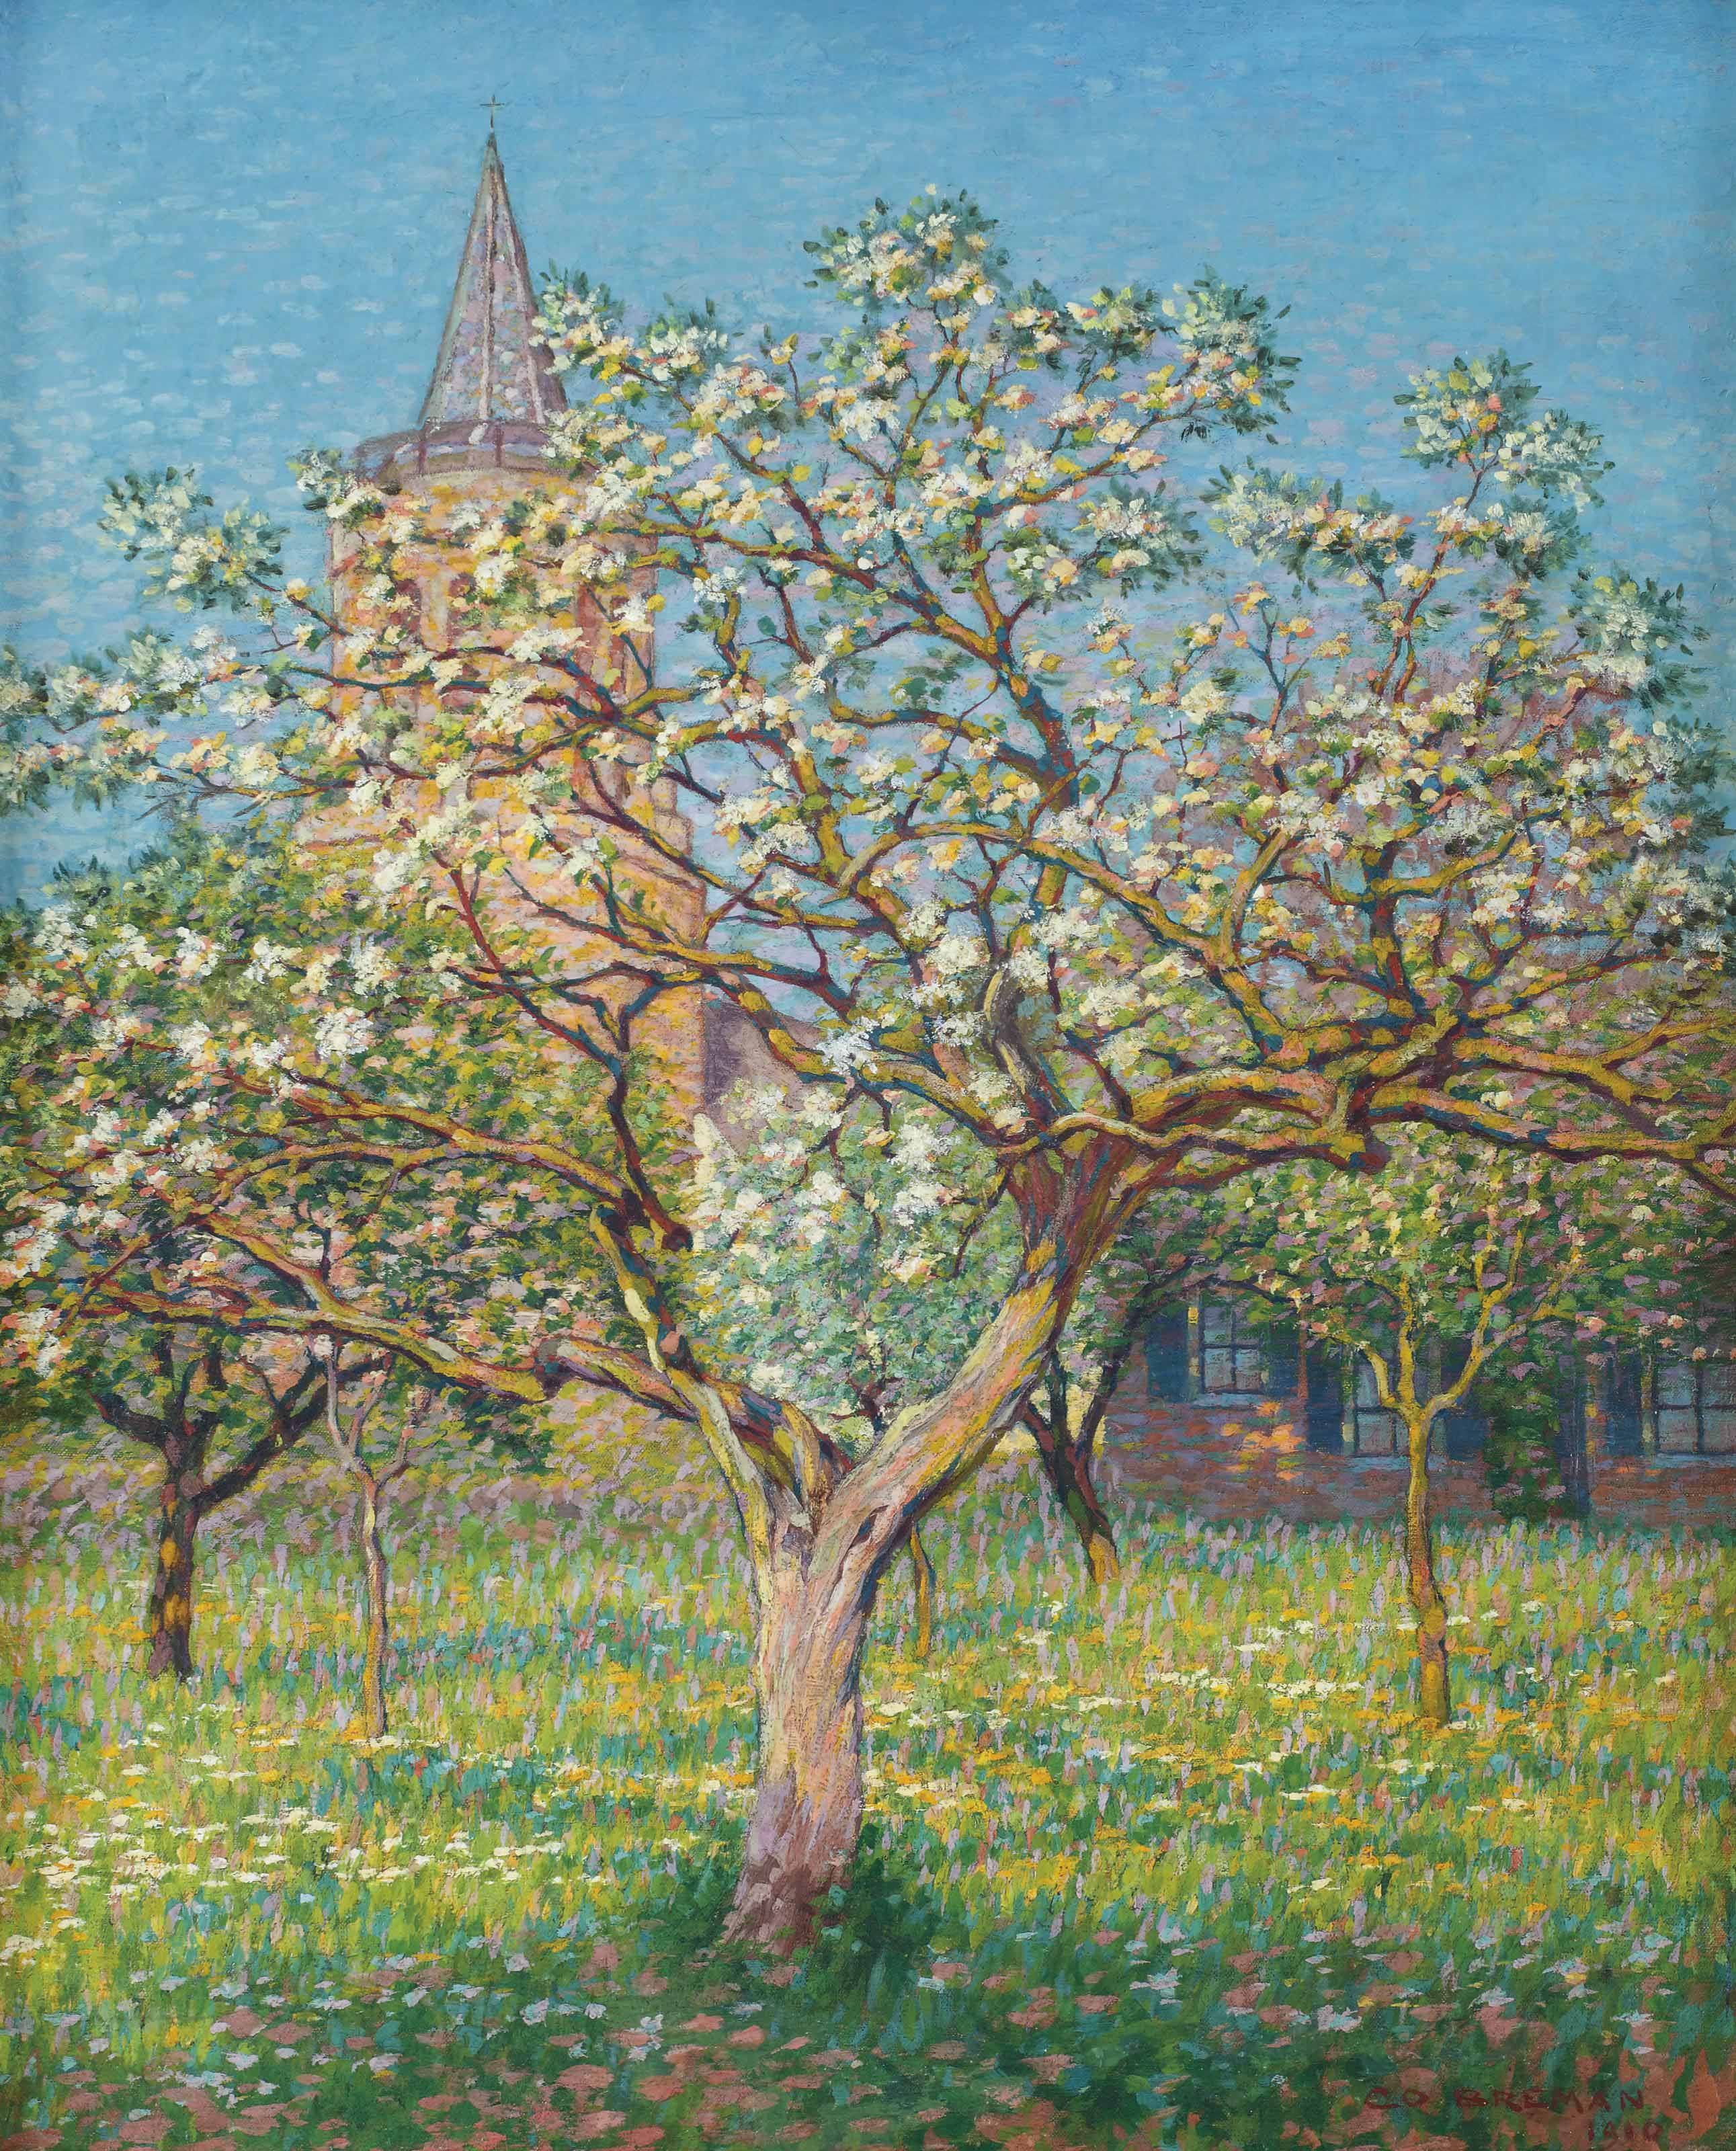 Blossoming tree with the church of Laren in the distance